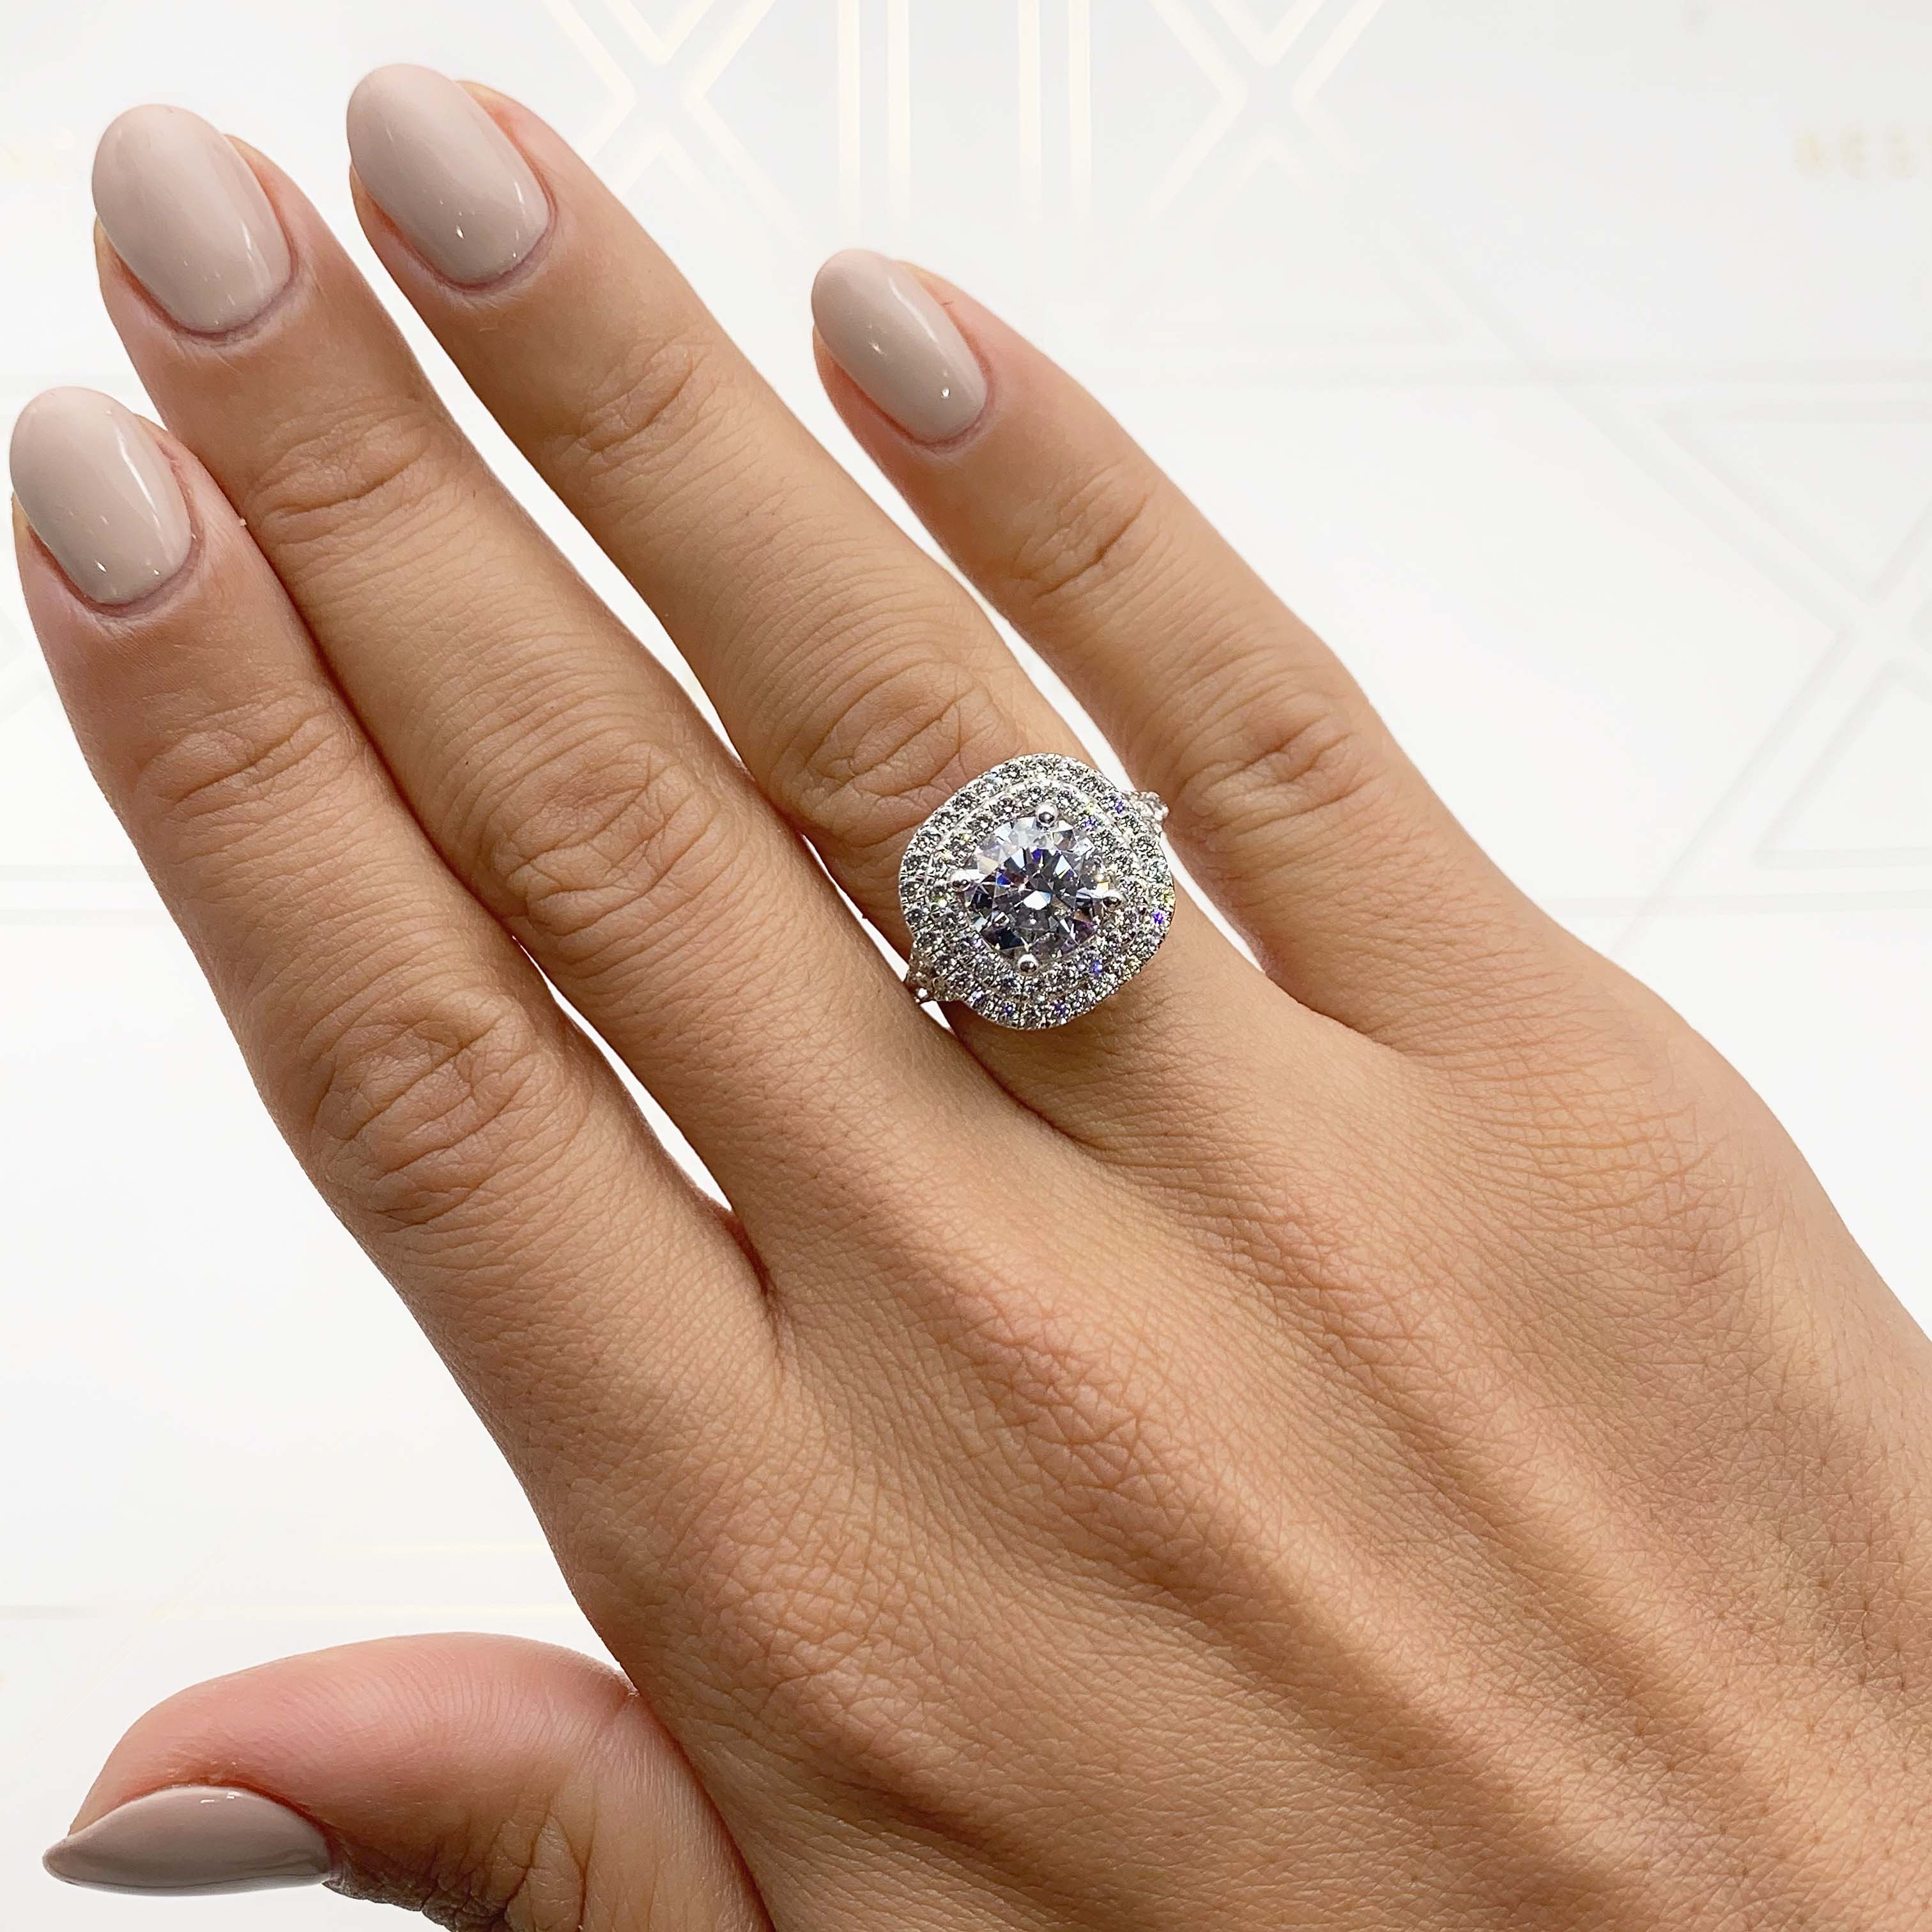 The Angela Lab Grown Ring -  14K WHITE GOLD DOUBLE HALO DIAMOND RING - 3 CARAT F VS2 ROUND #LG10024